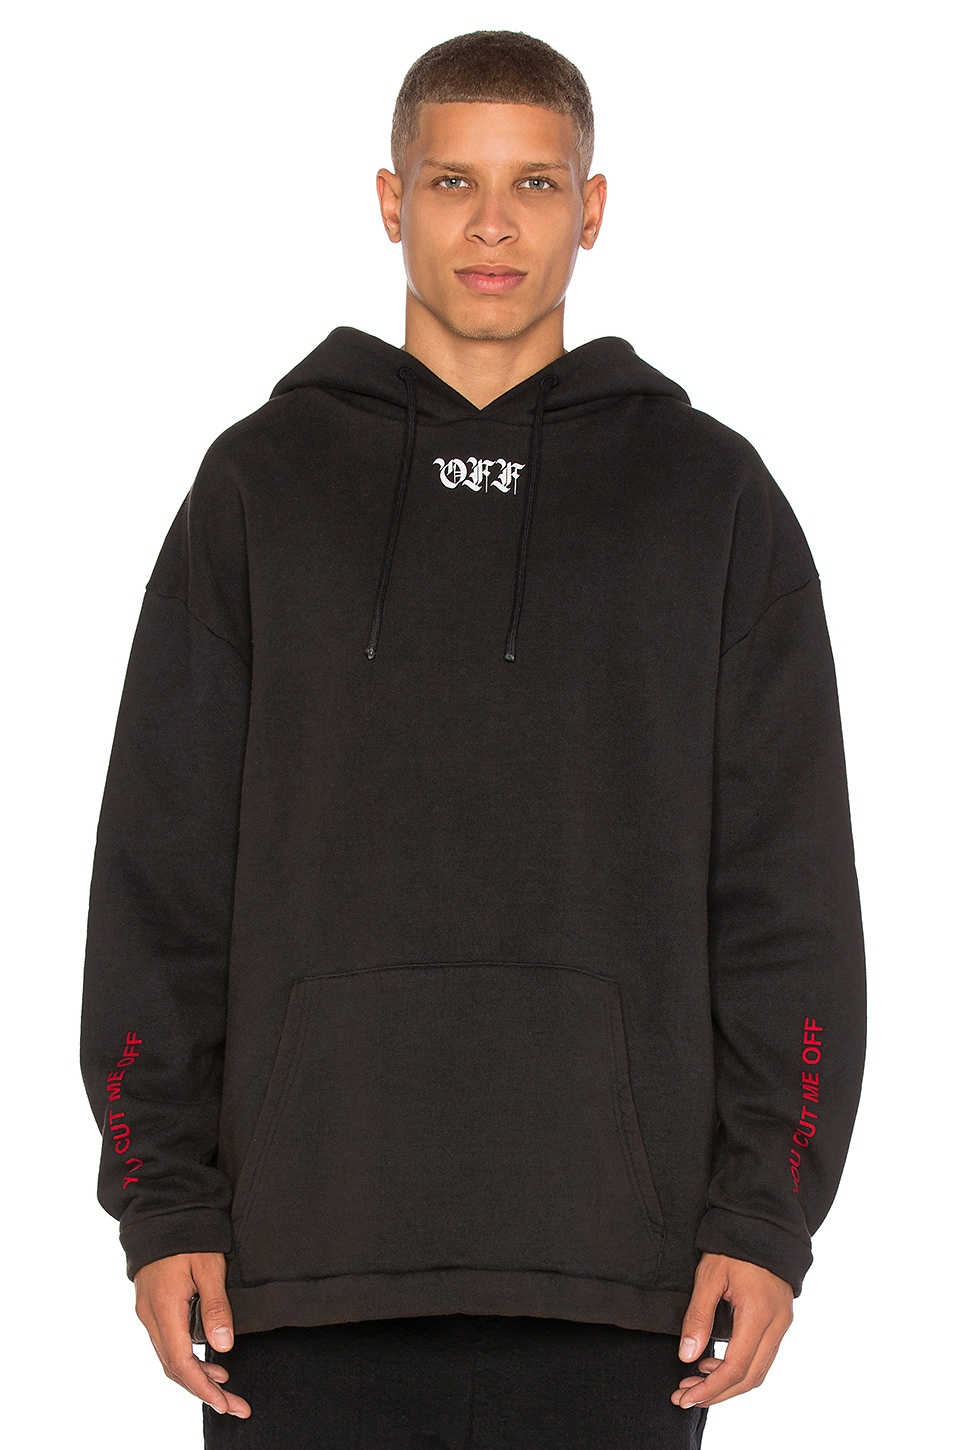 OFF-WHITE Cut Off Hoodie in Black & Red | REVOLVE